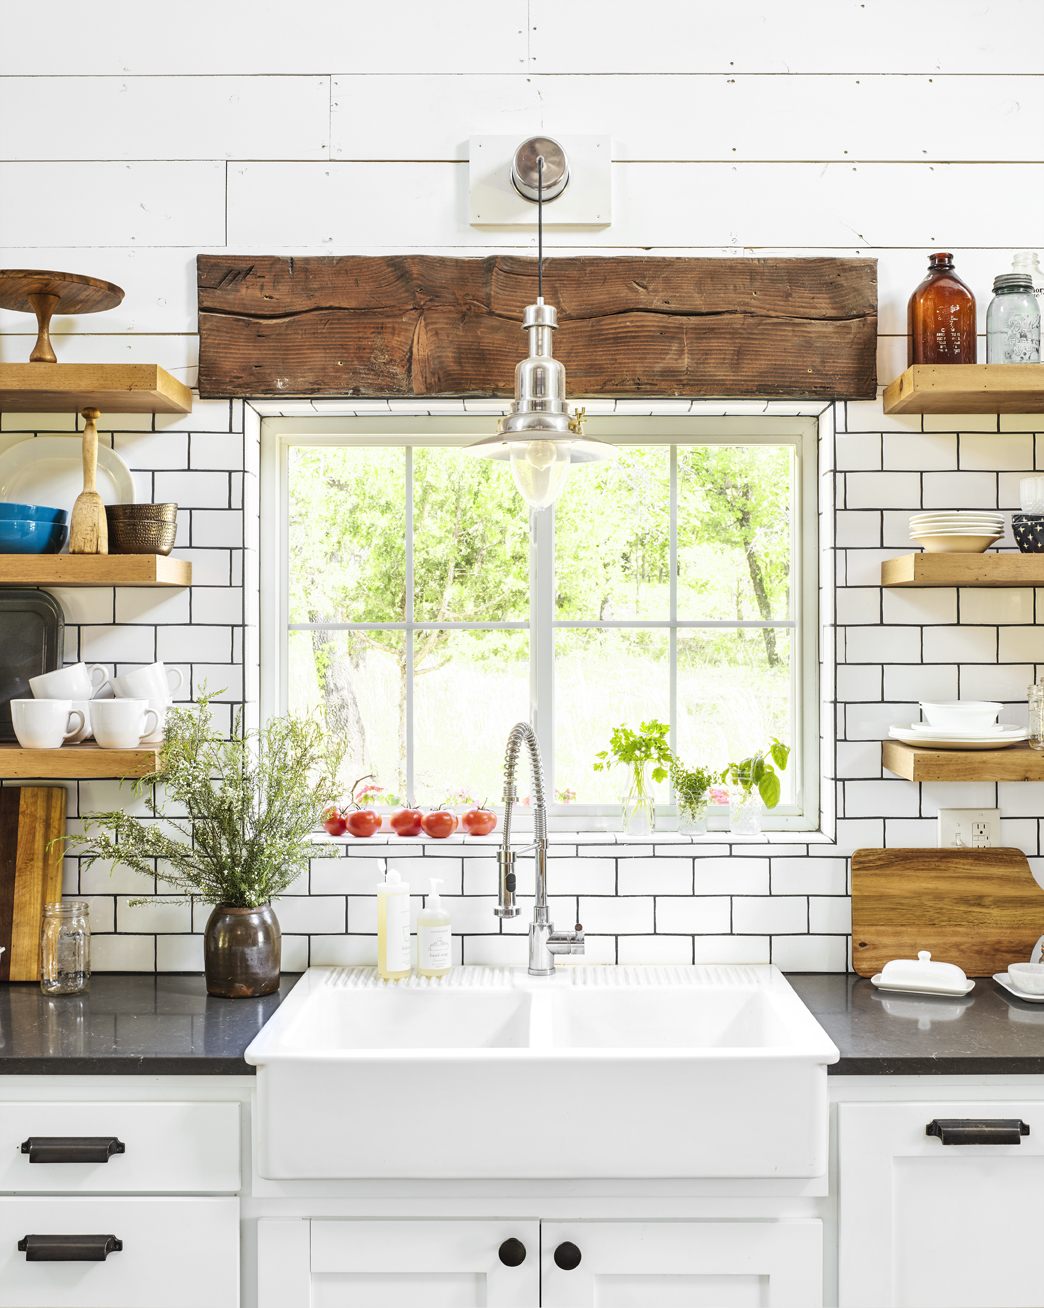 The Problem With Farmhouse Sinks That No One Talks About Cleaning A Farmhouse Sink